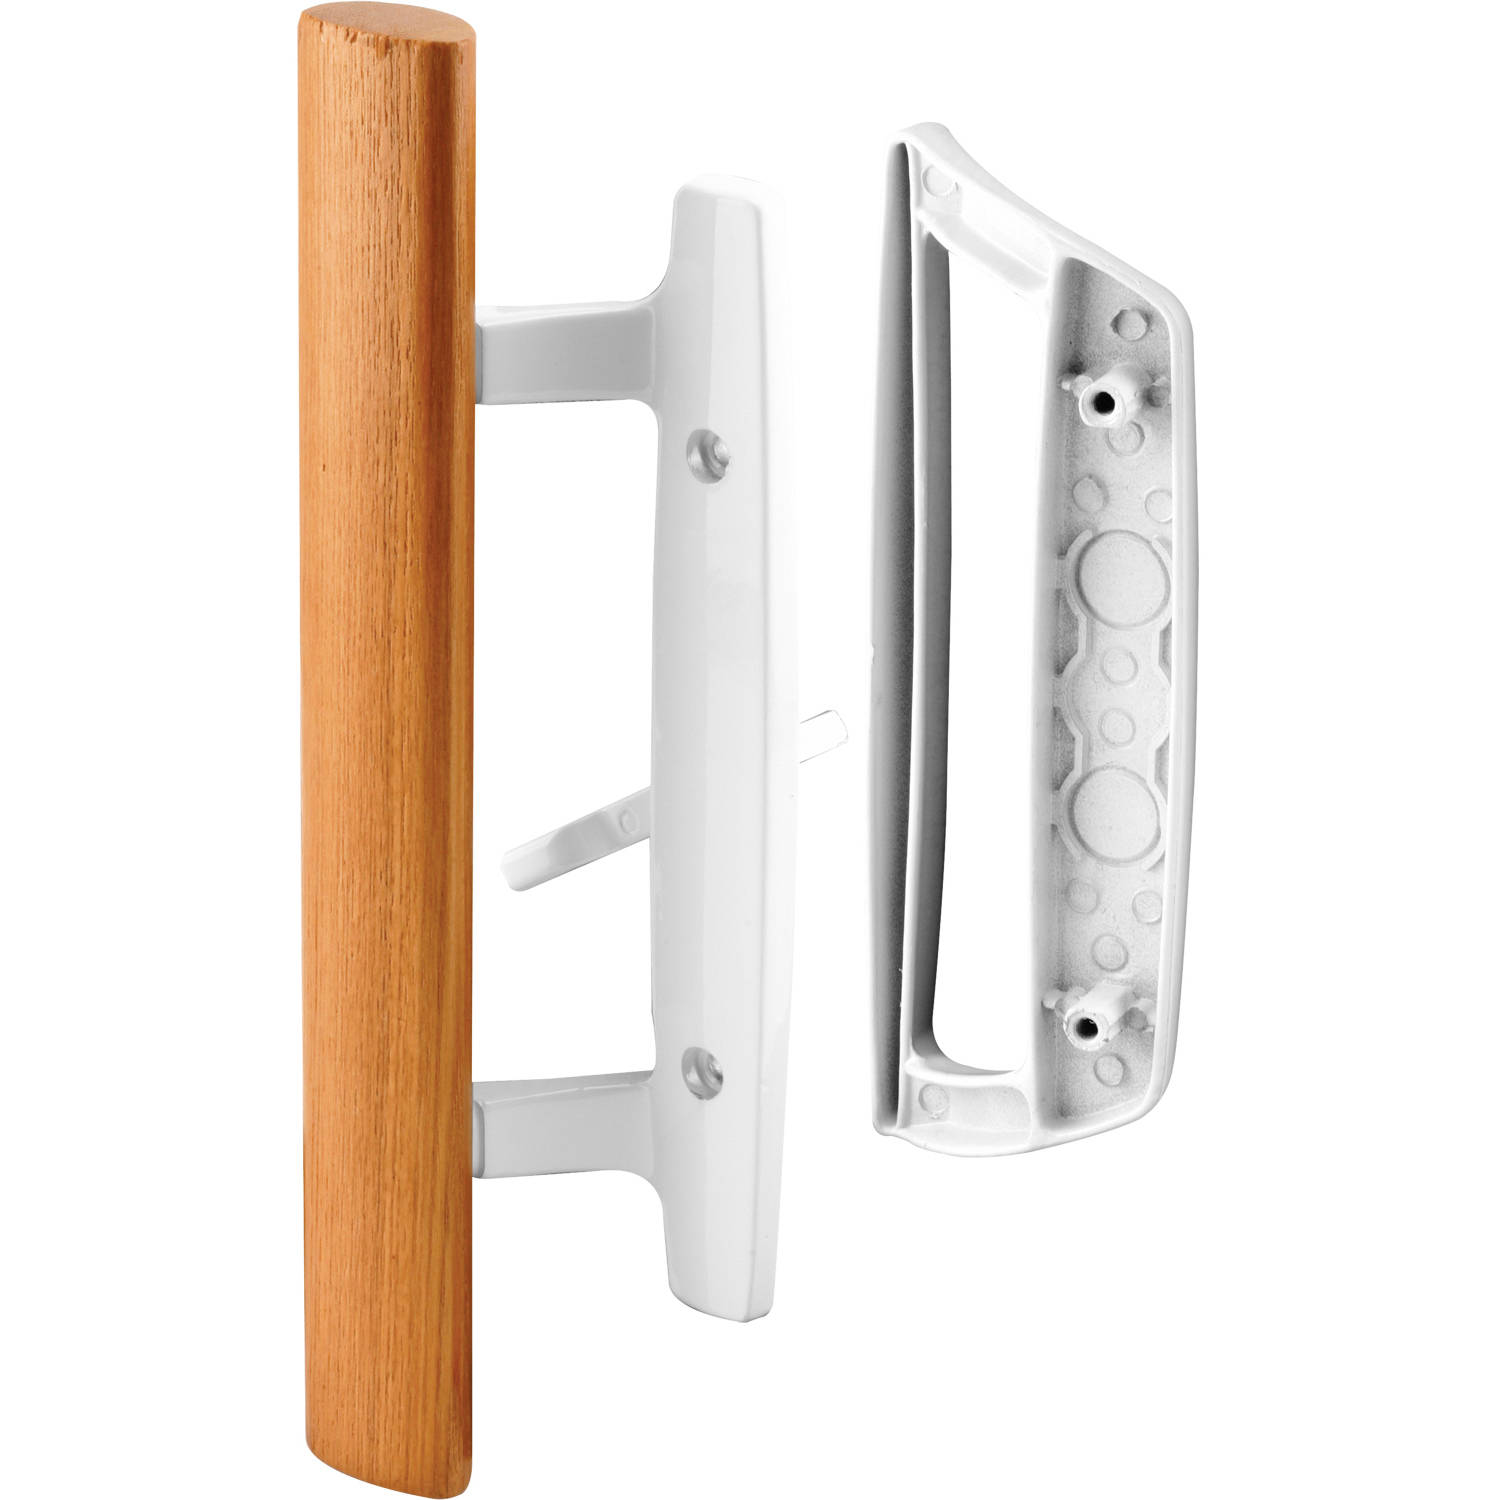 Prime Line Products C 1204 Sliding Door Handle Set Wood Handle